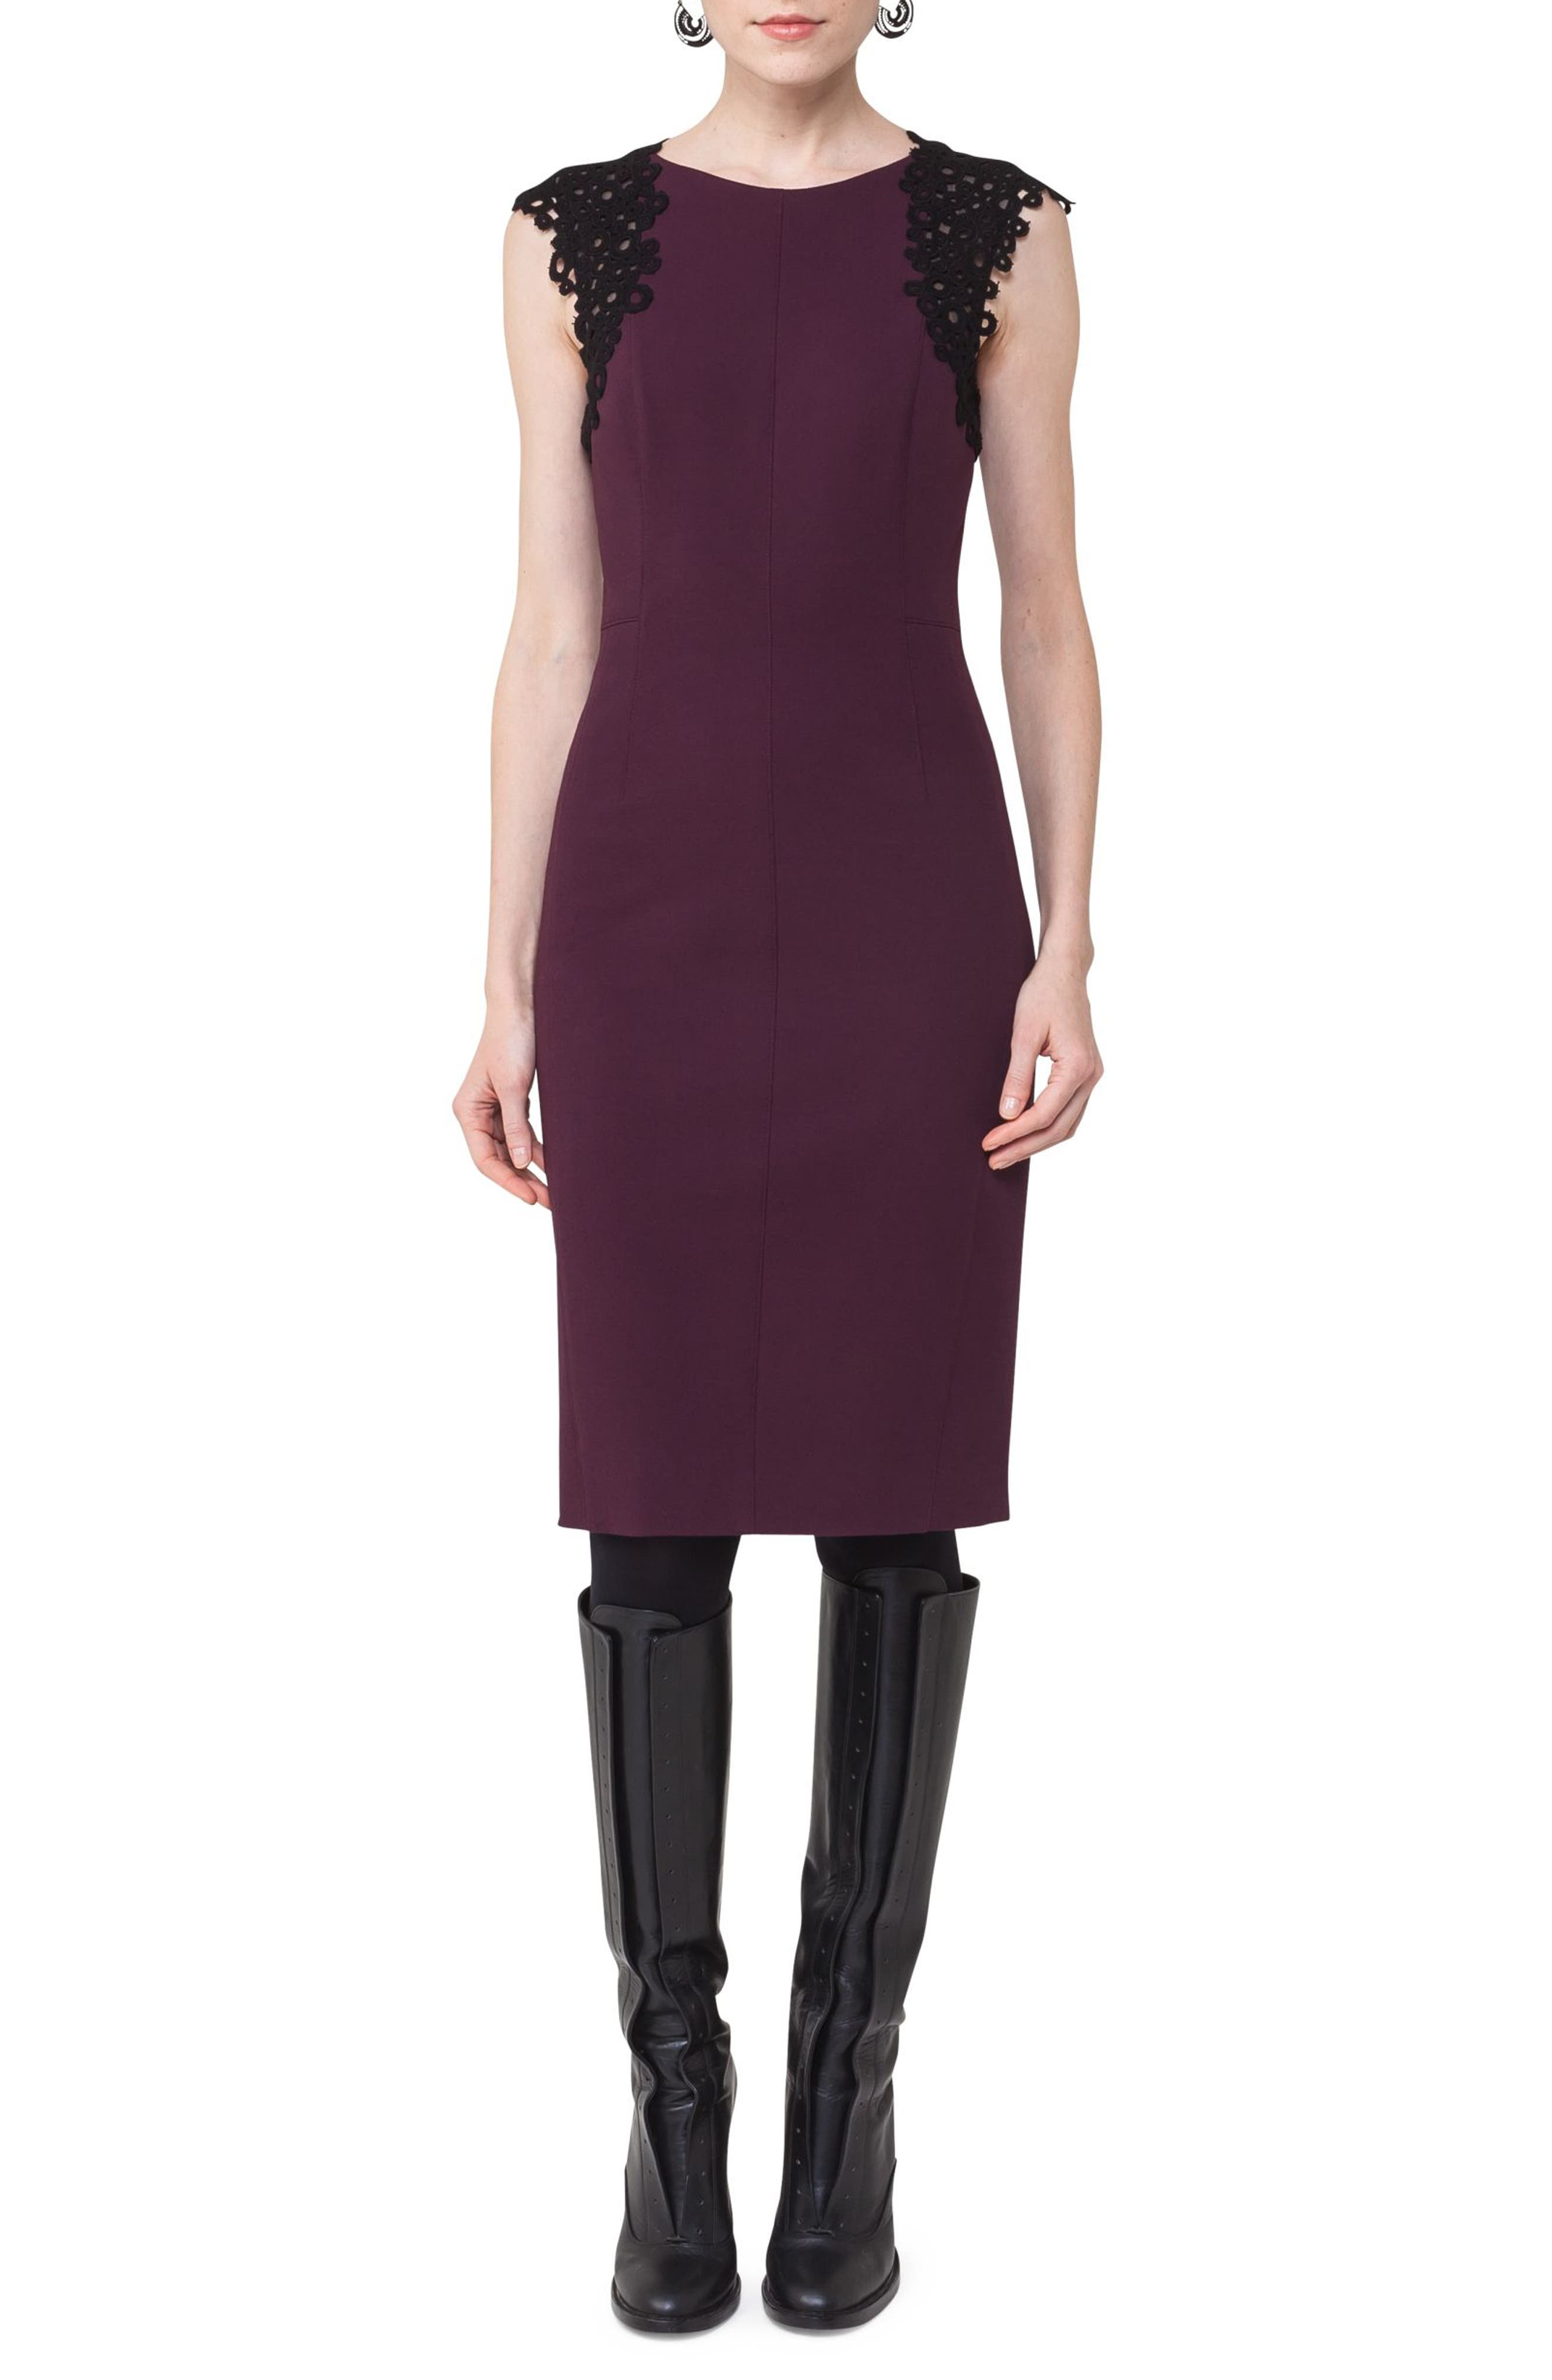 Lace Trim Sheath Dress,                         Main,                         color, Wine